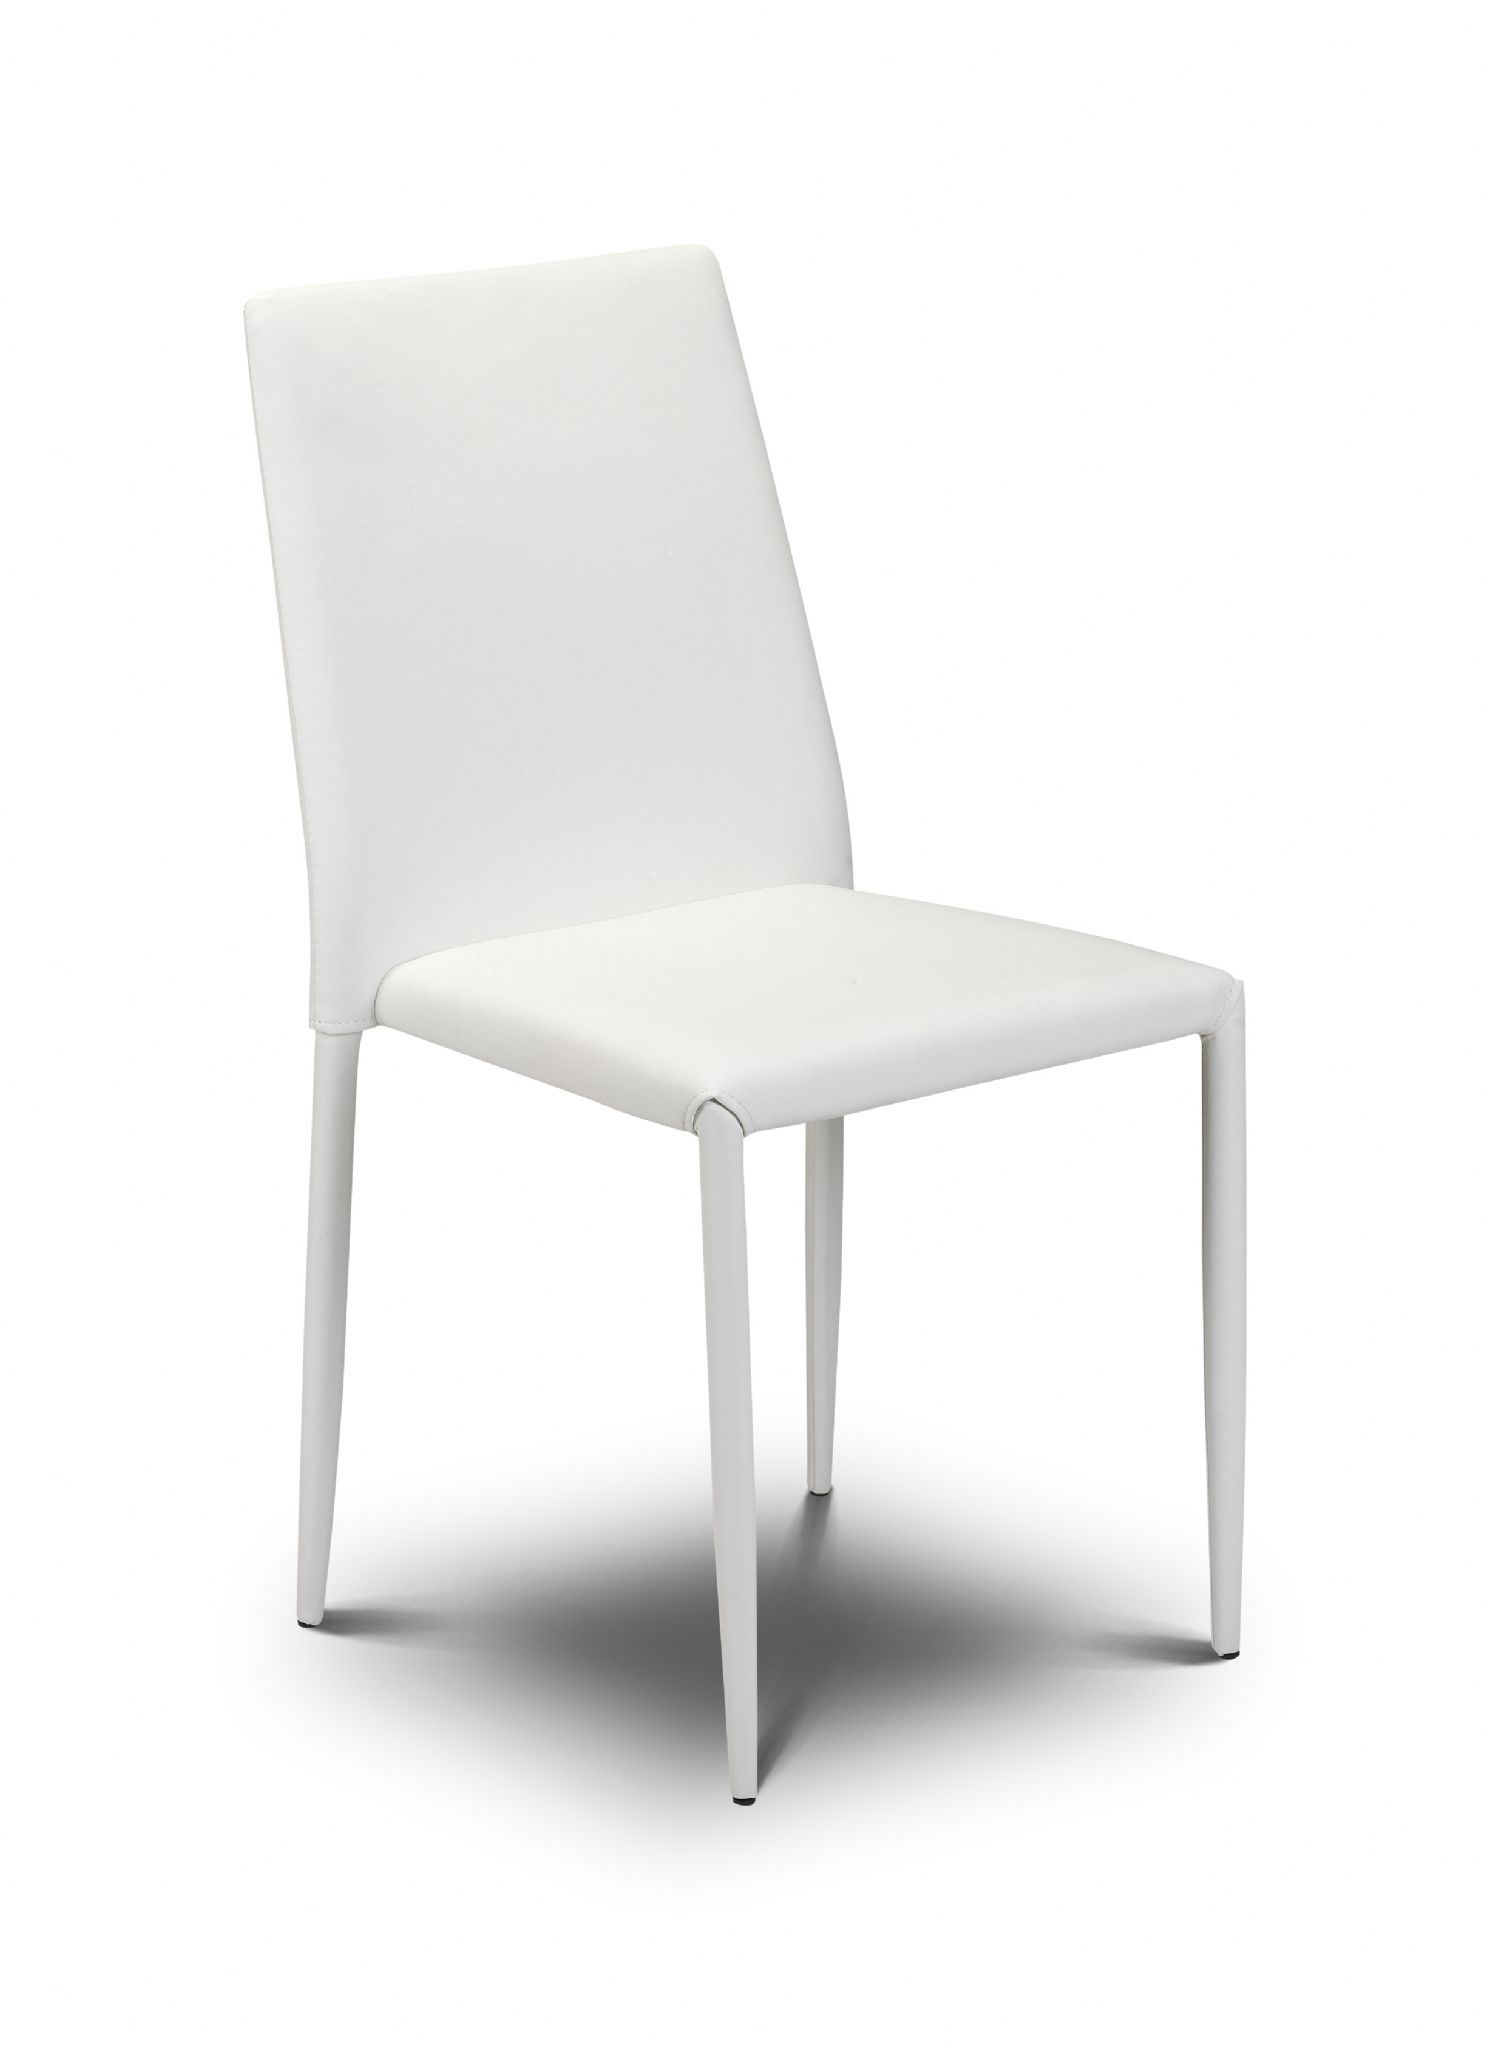 stacking dining chairs uk hydraulic gaming chair for sale rovigo vibrant white leather stack away jb245